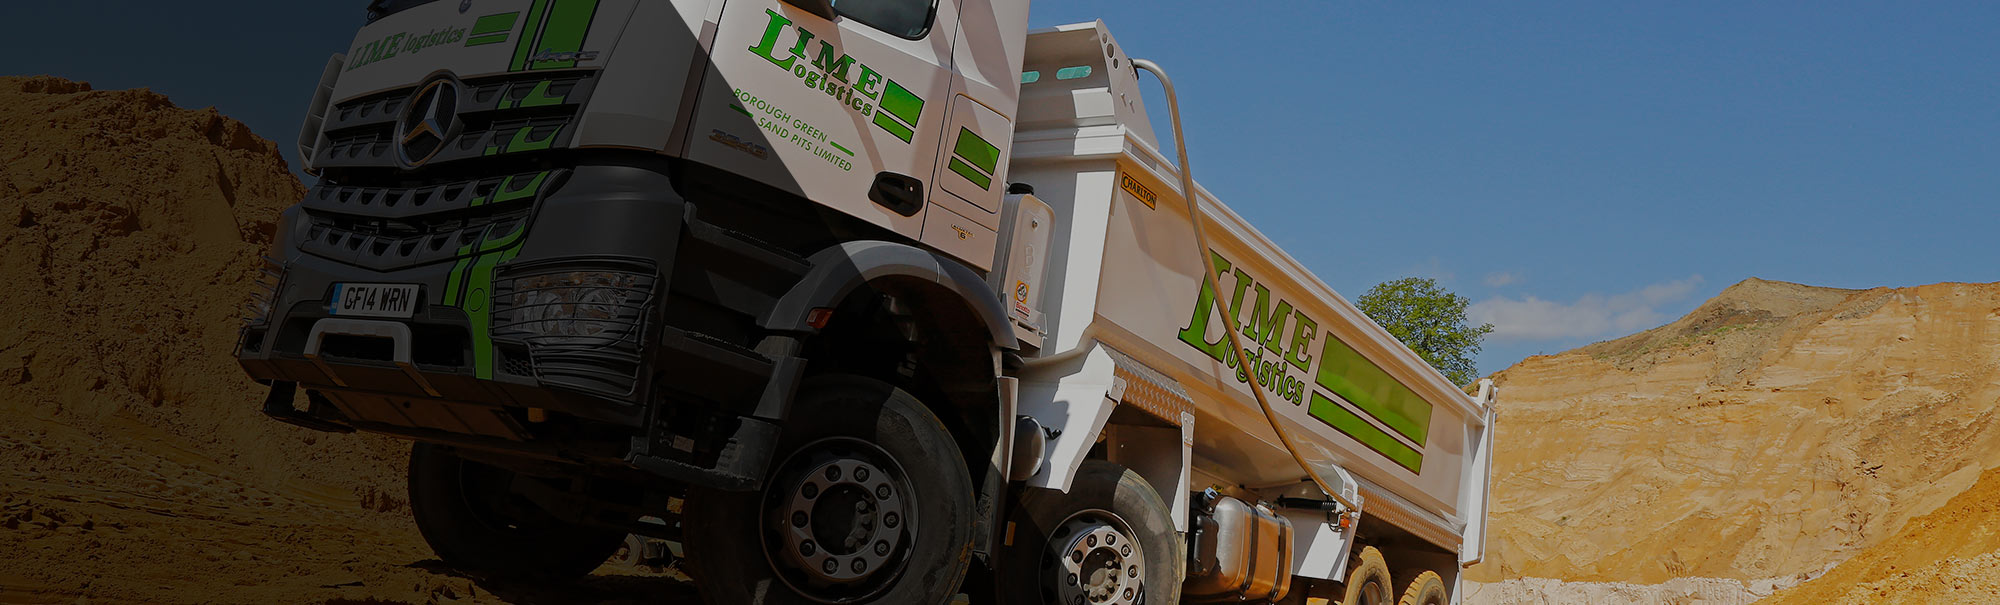 http://www.lime-logistics.co.uk/wp-content/uploads/2014/07/header-bg.jpg